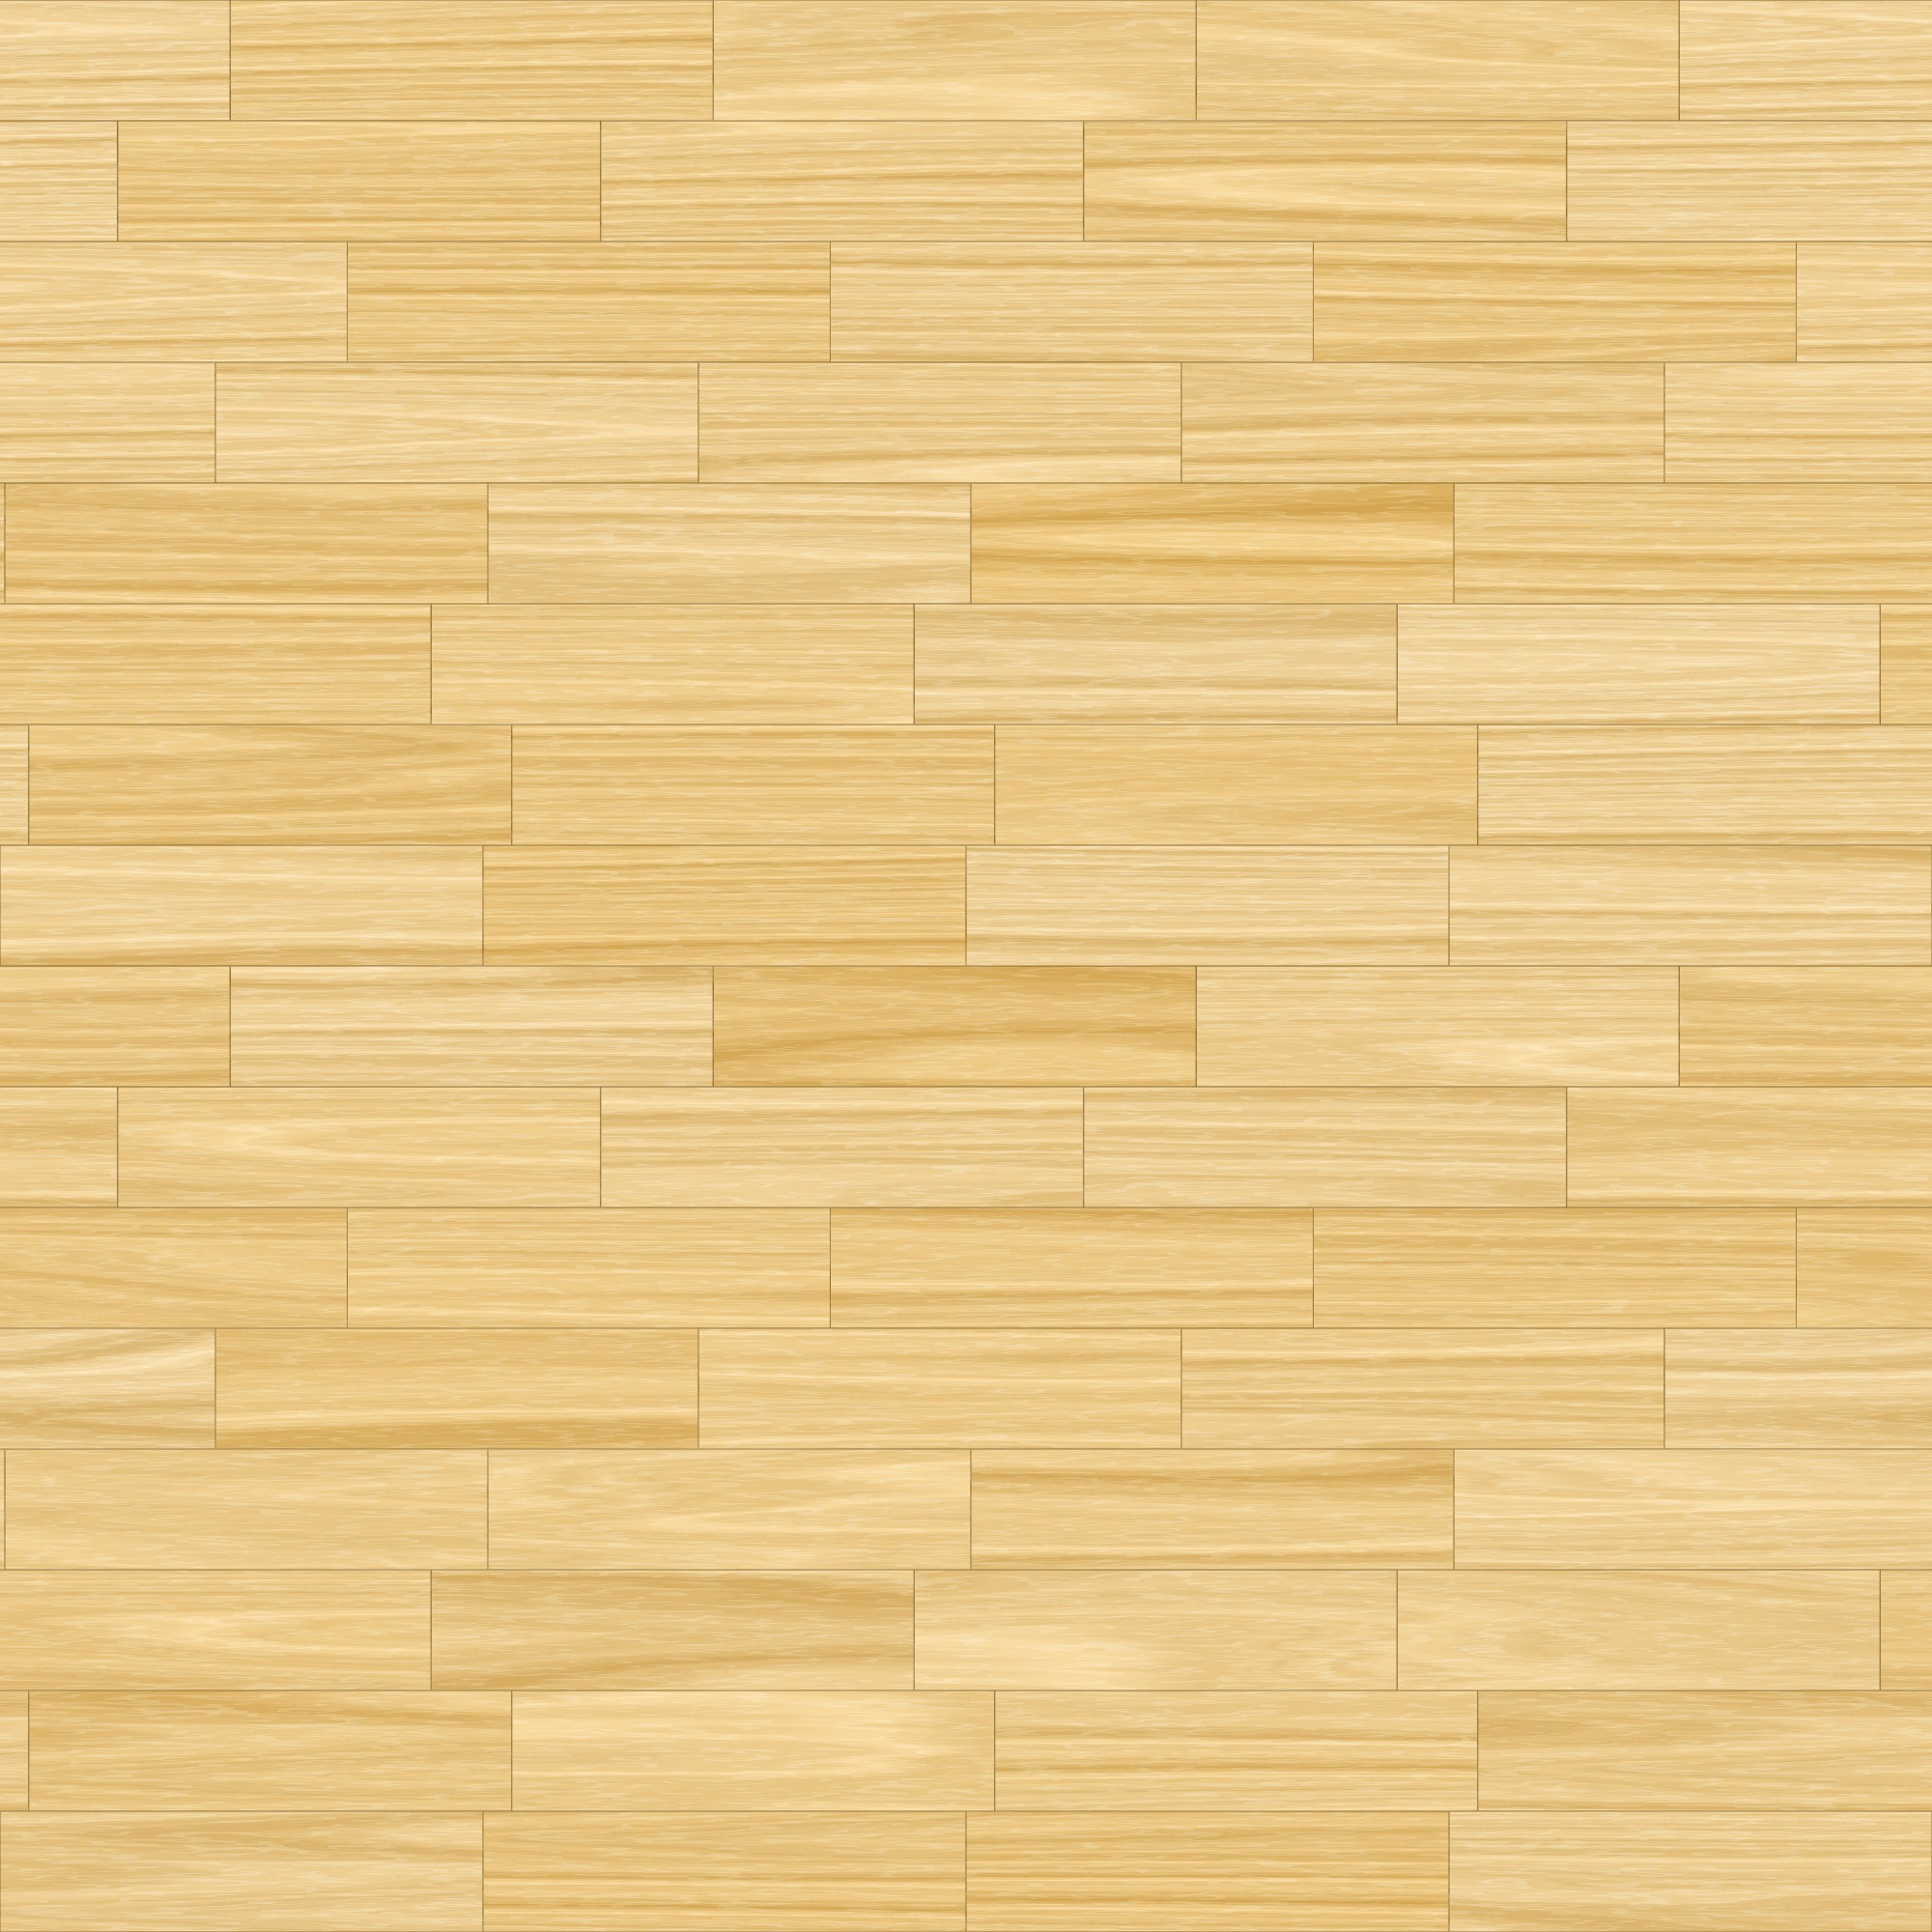 Light Wood Background 183 '� Download Free Cool Full Hd